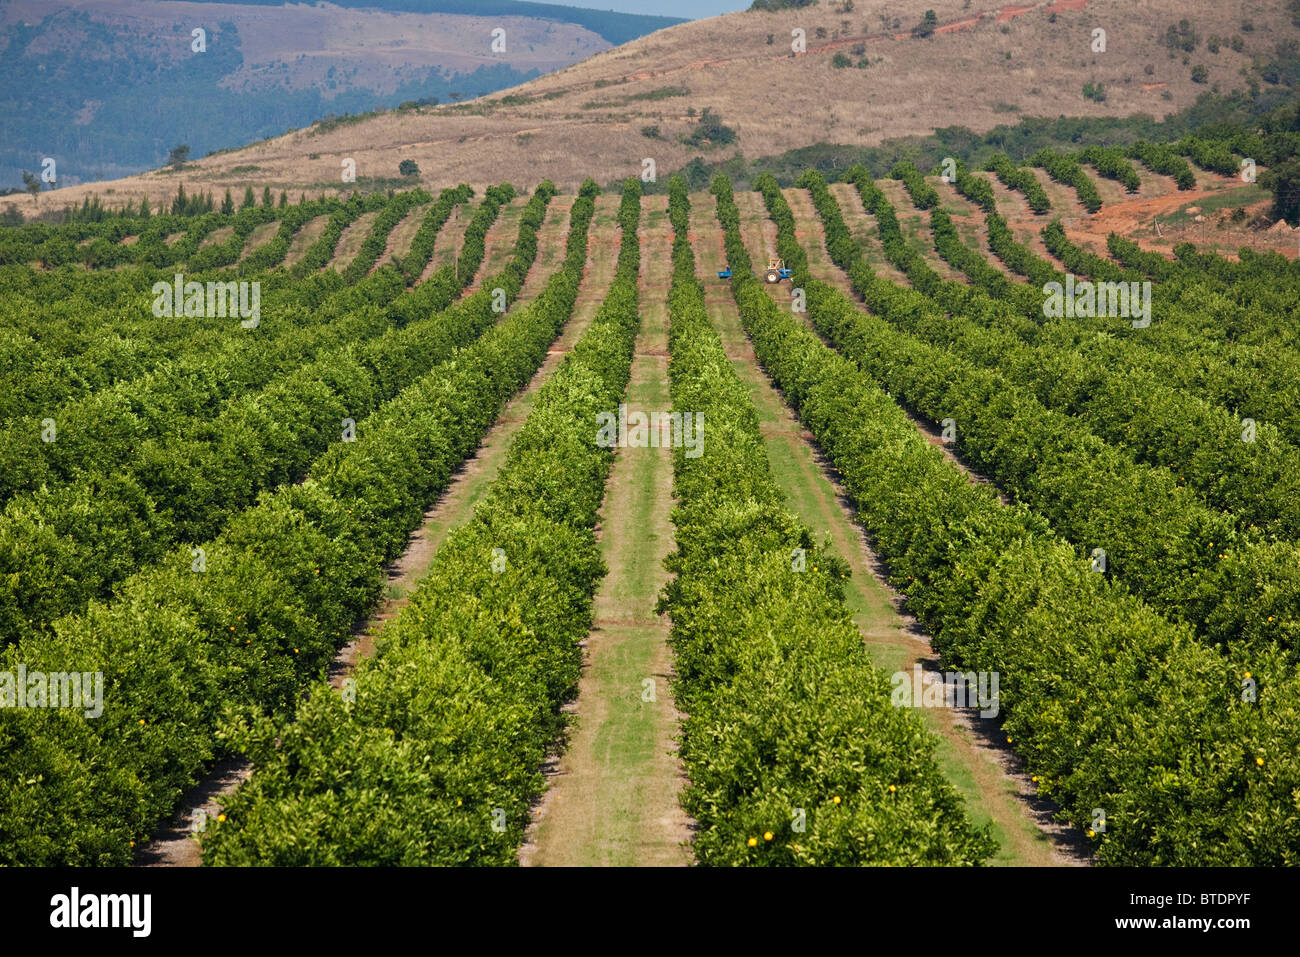 Rows Of Trees In A Citrus Orchard Stock Photo Royalty